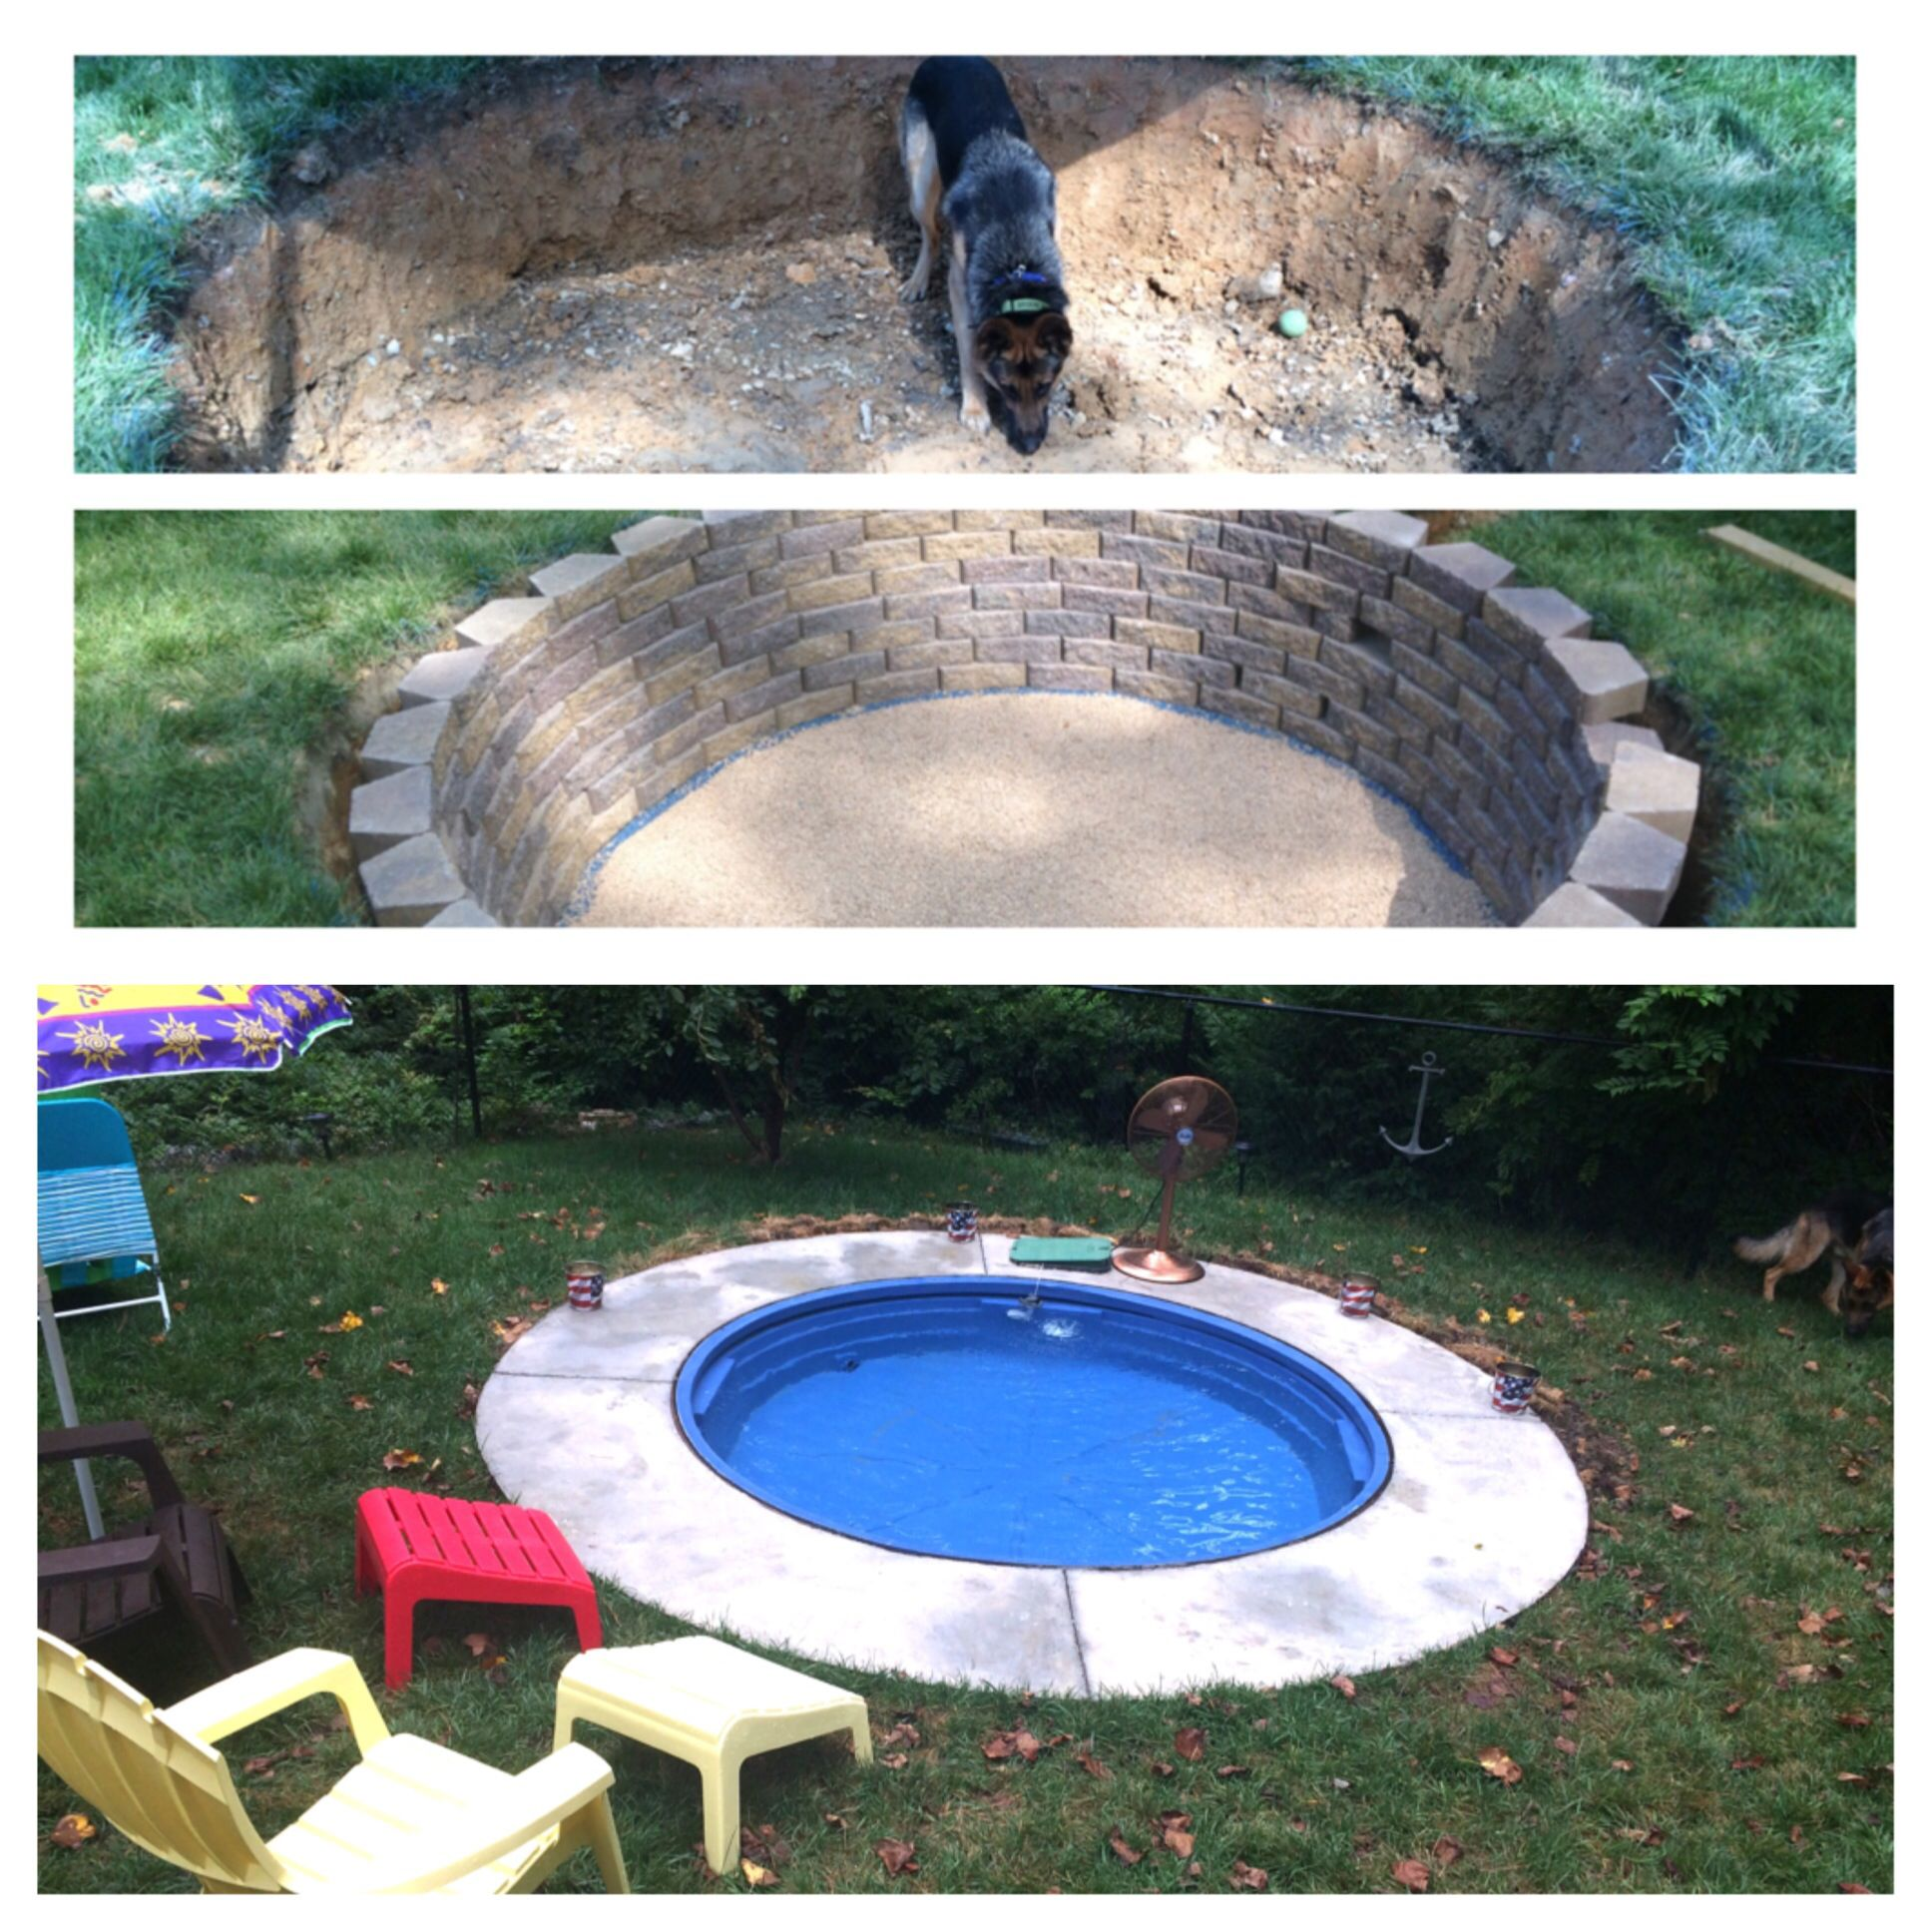 Mini pool build using a stock tank from tractor supply for Building an inground pool